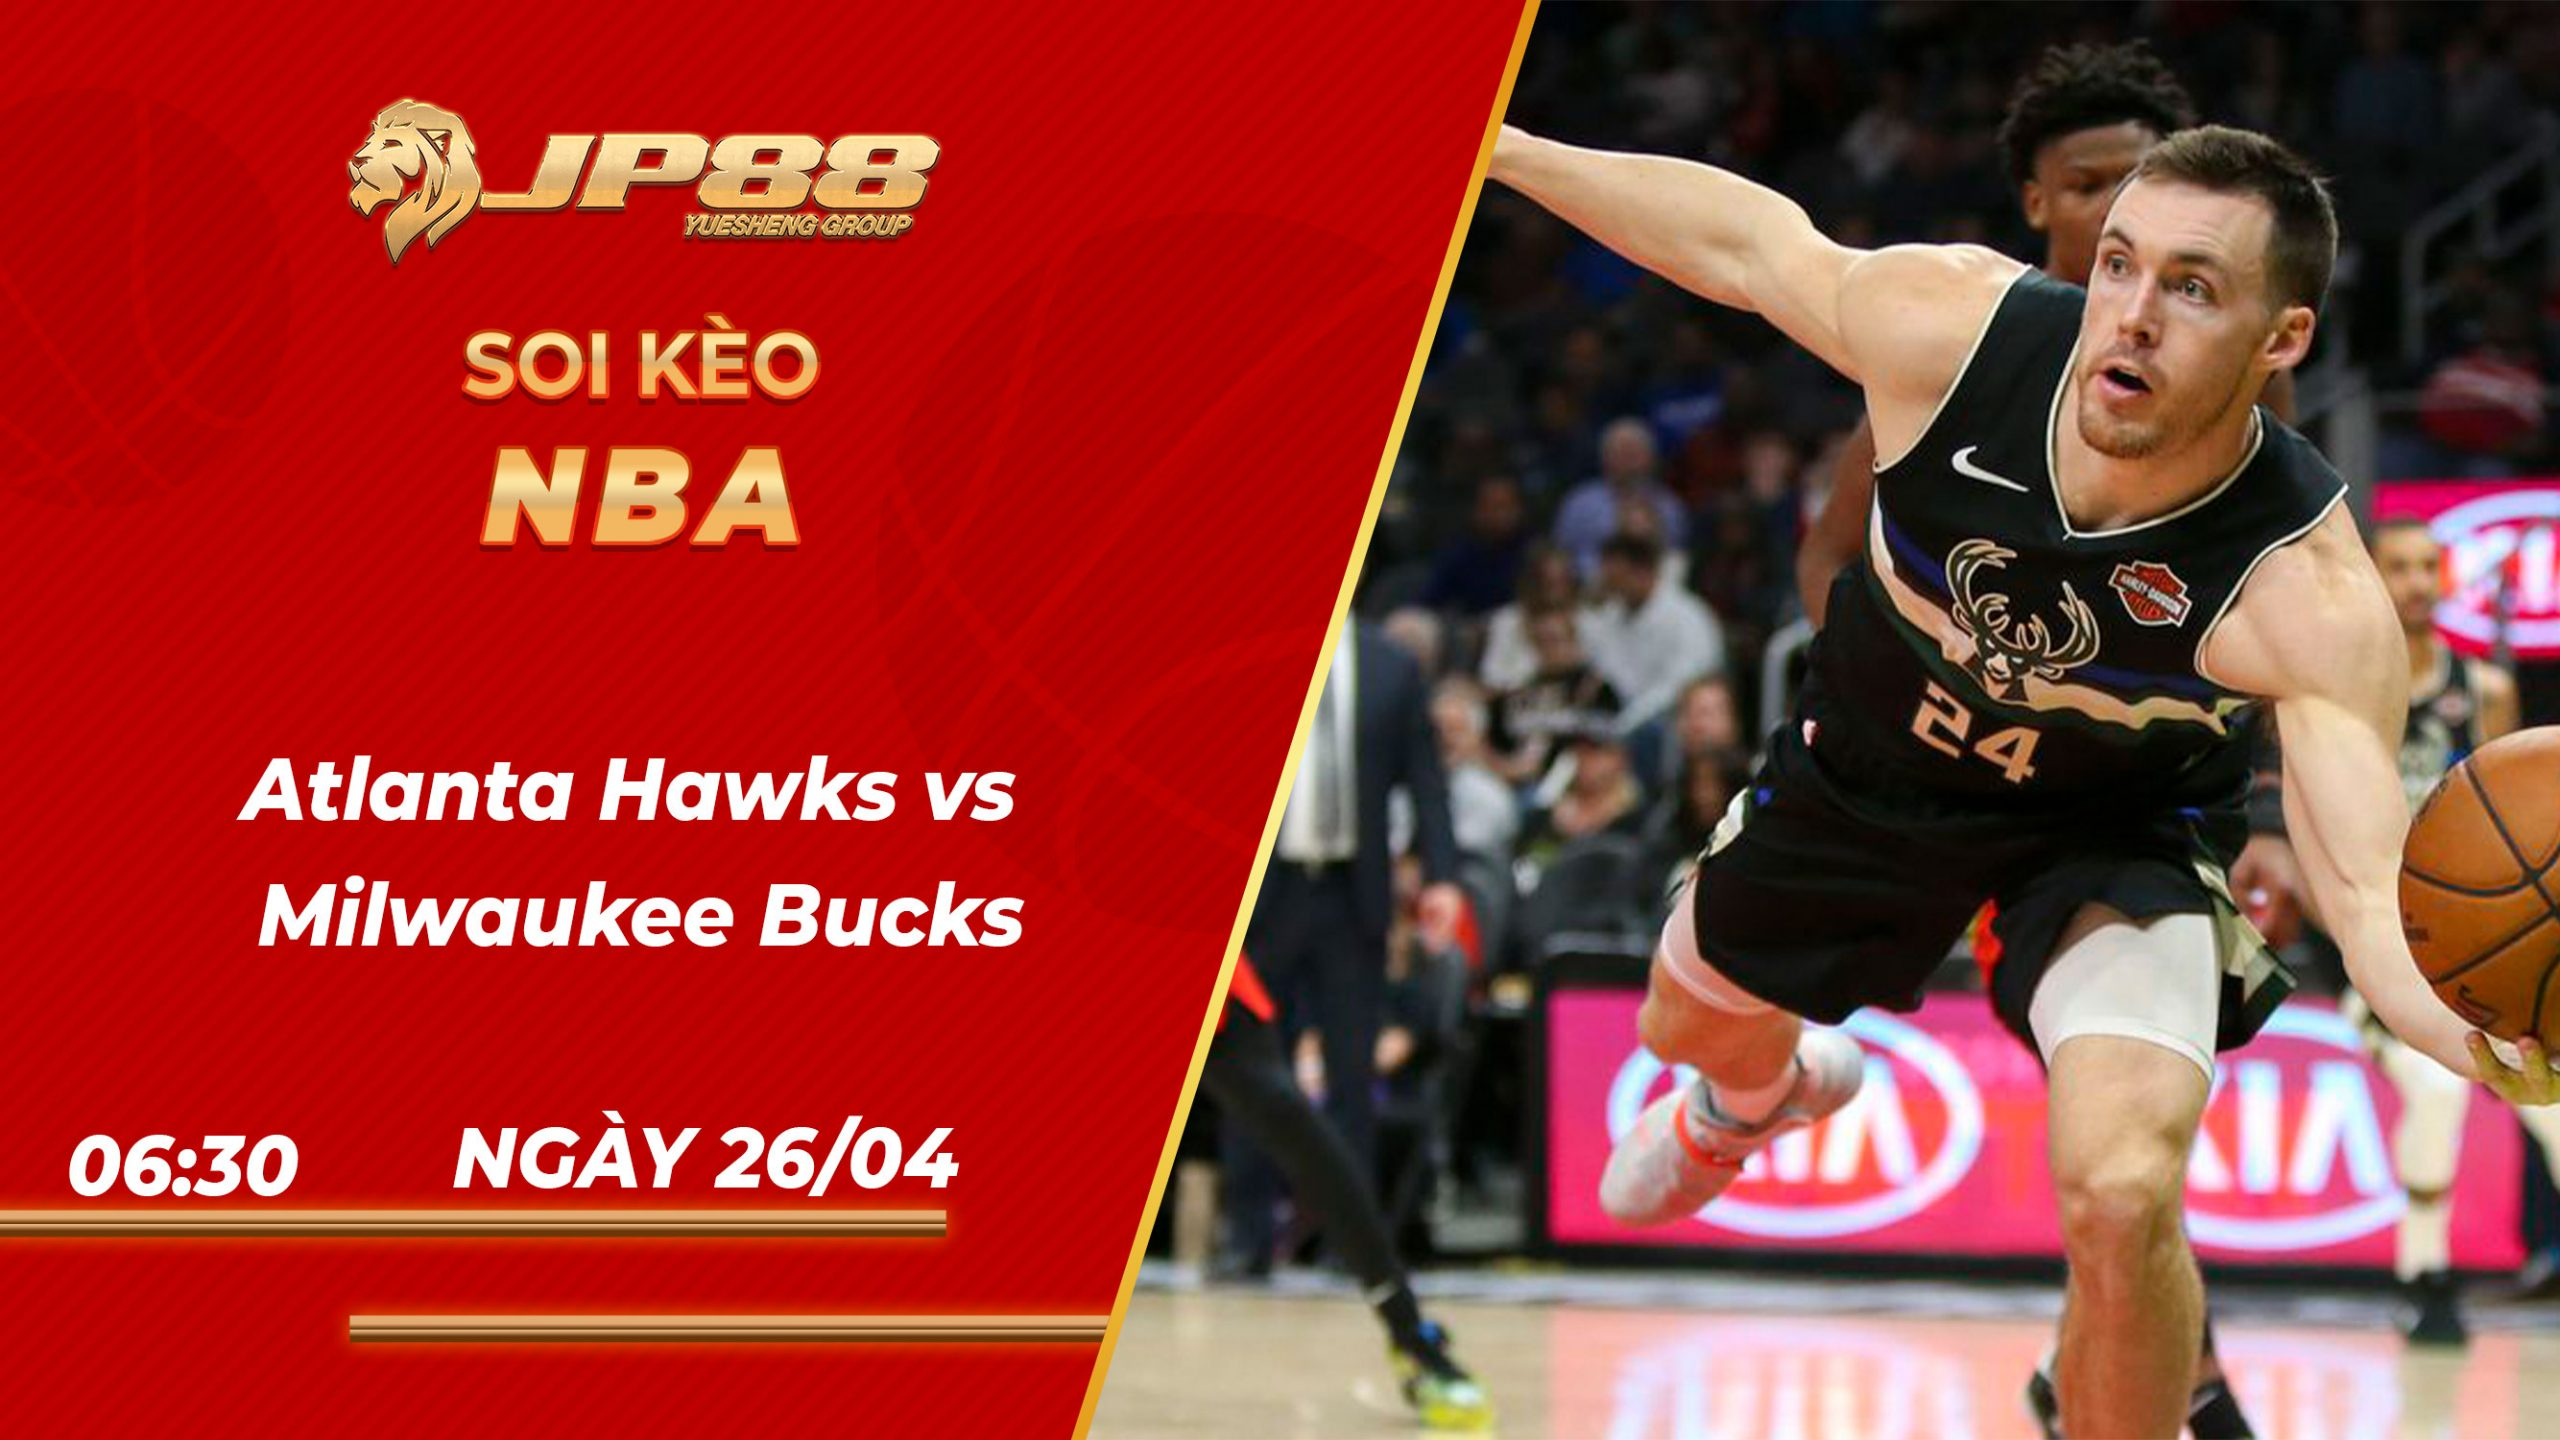 Soi kèo bóng rổ Atlanta Hawks vs Milwaukee Bucks – 26/04/2021